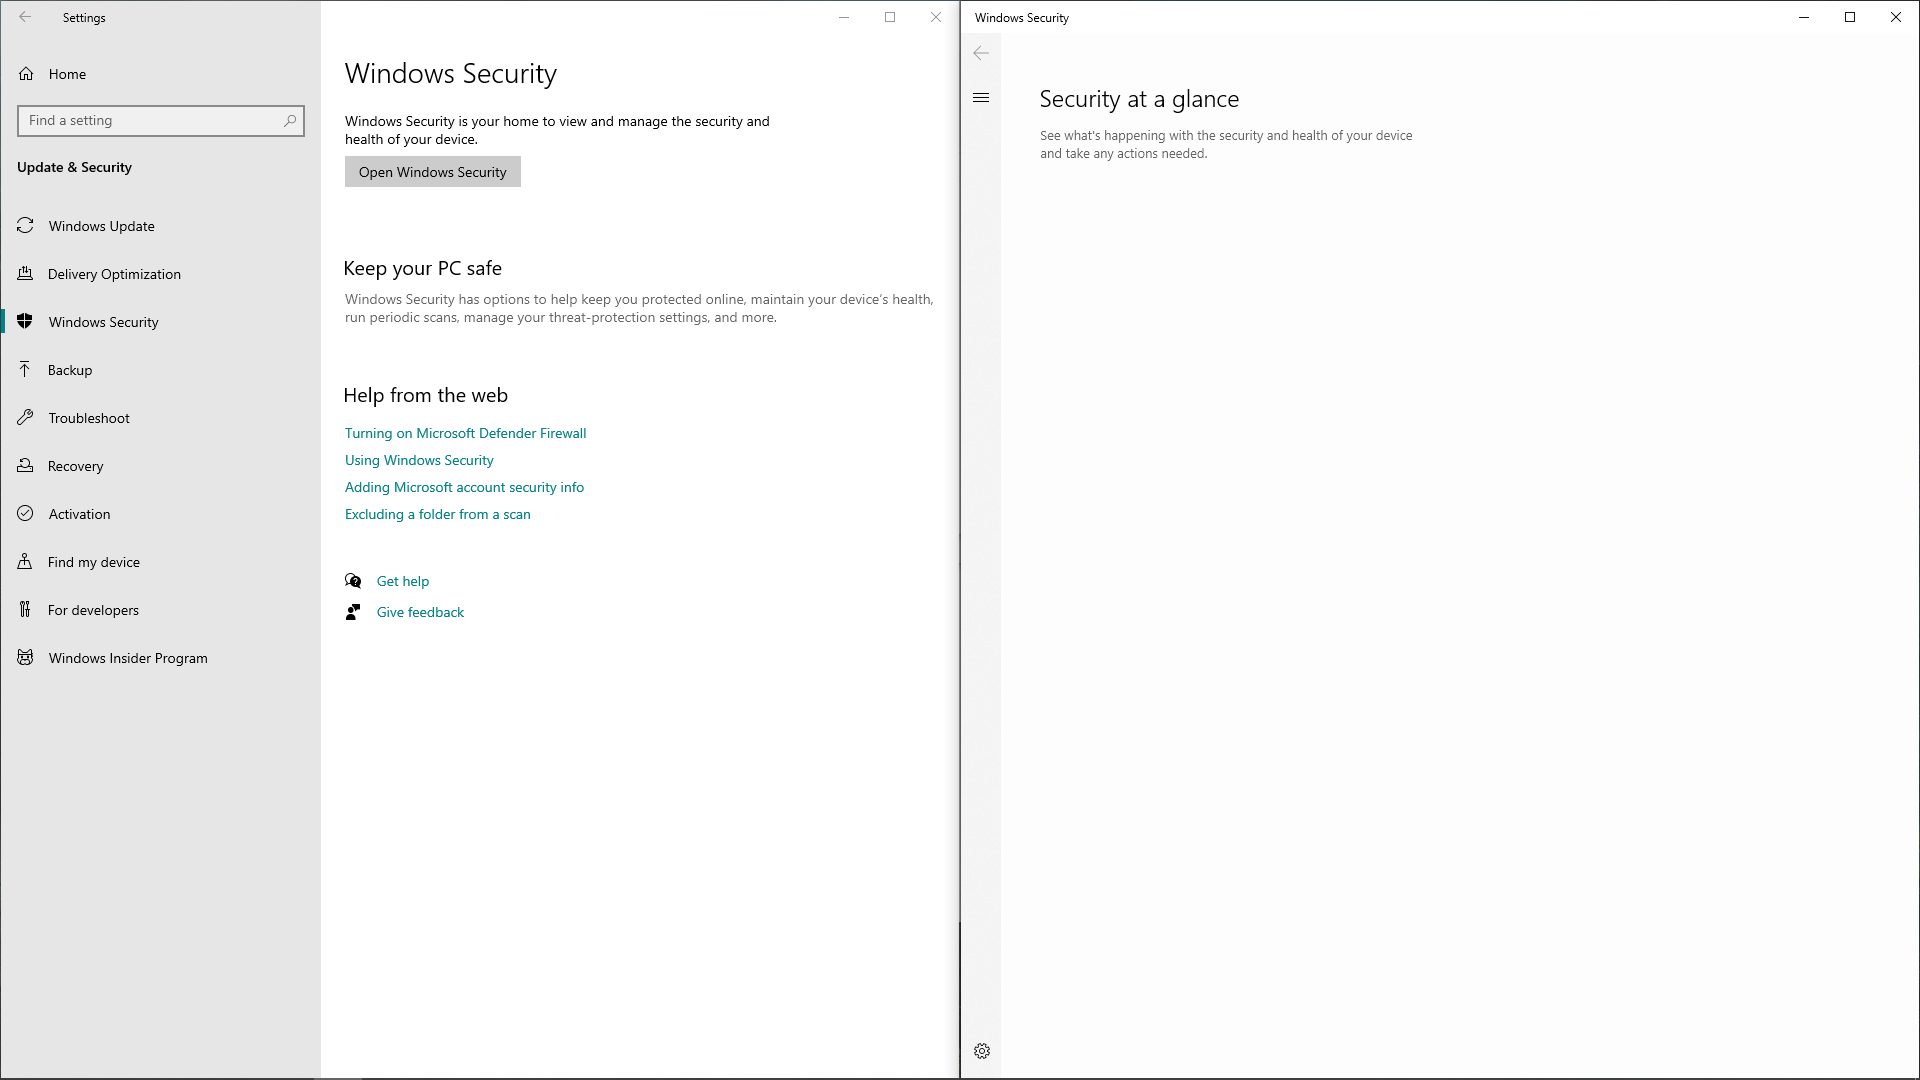 Issues with Windows Security 20e68f99-56a4-4b2d-8a50-c9b300a41ea3?upload=true.png